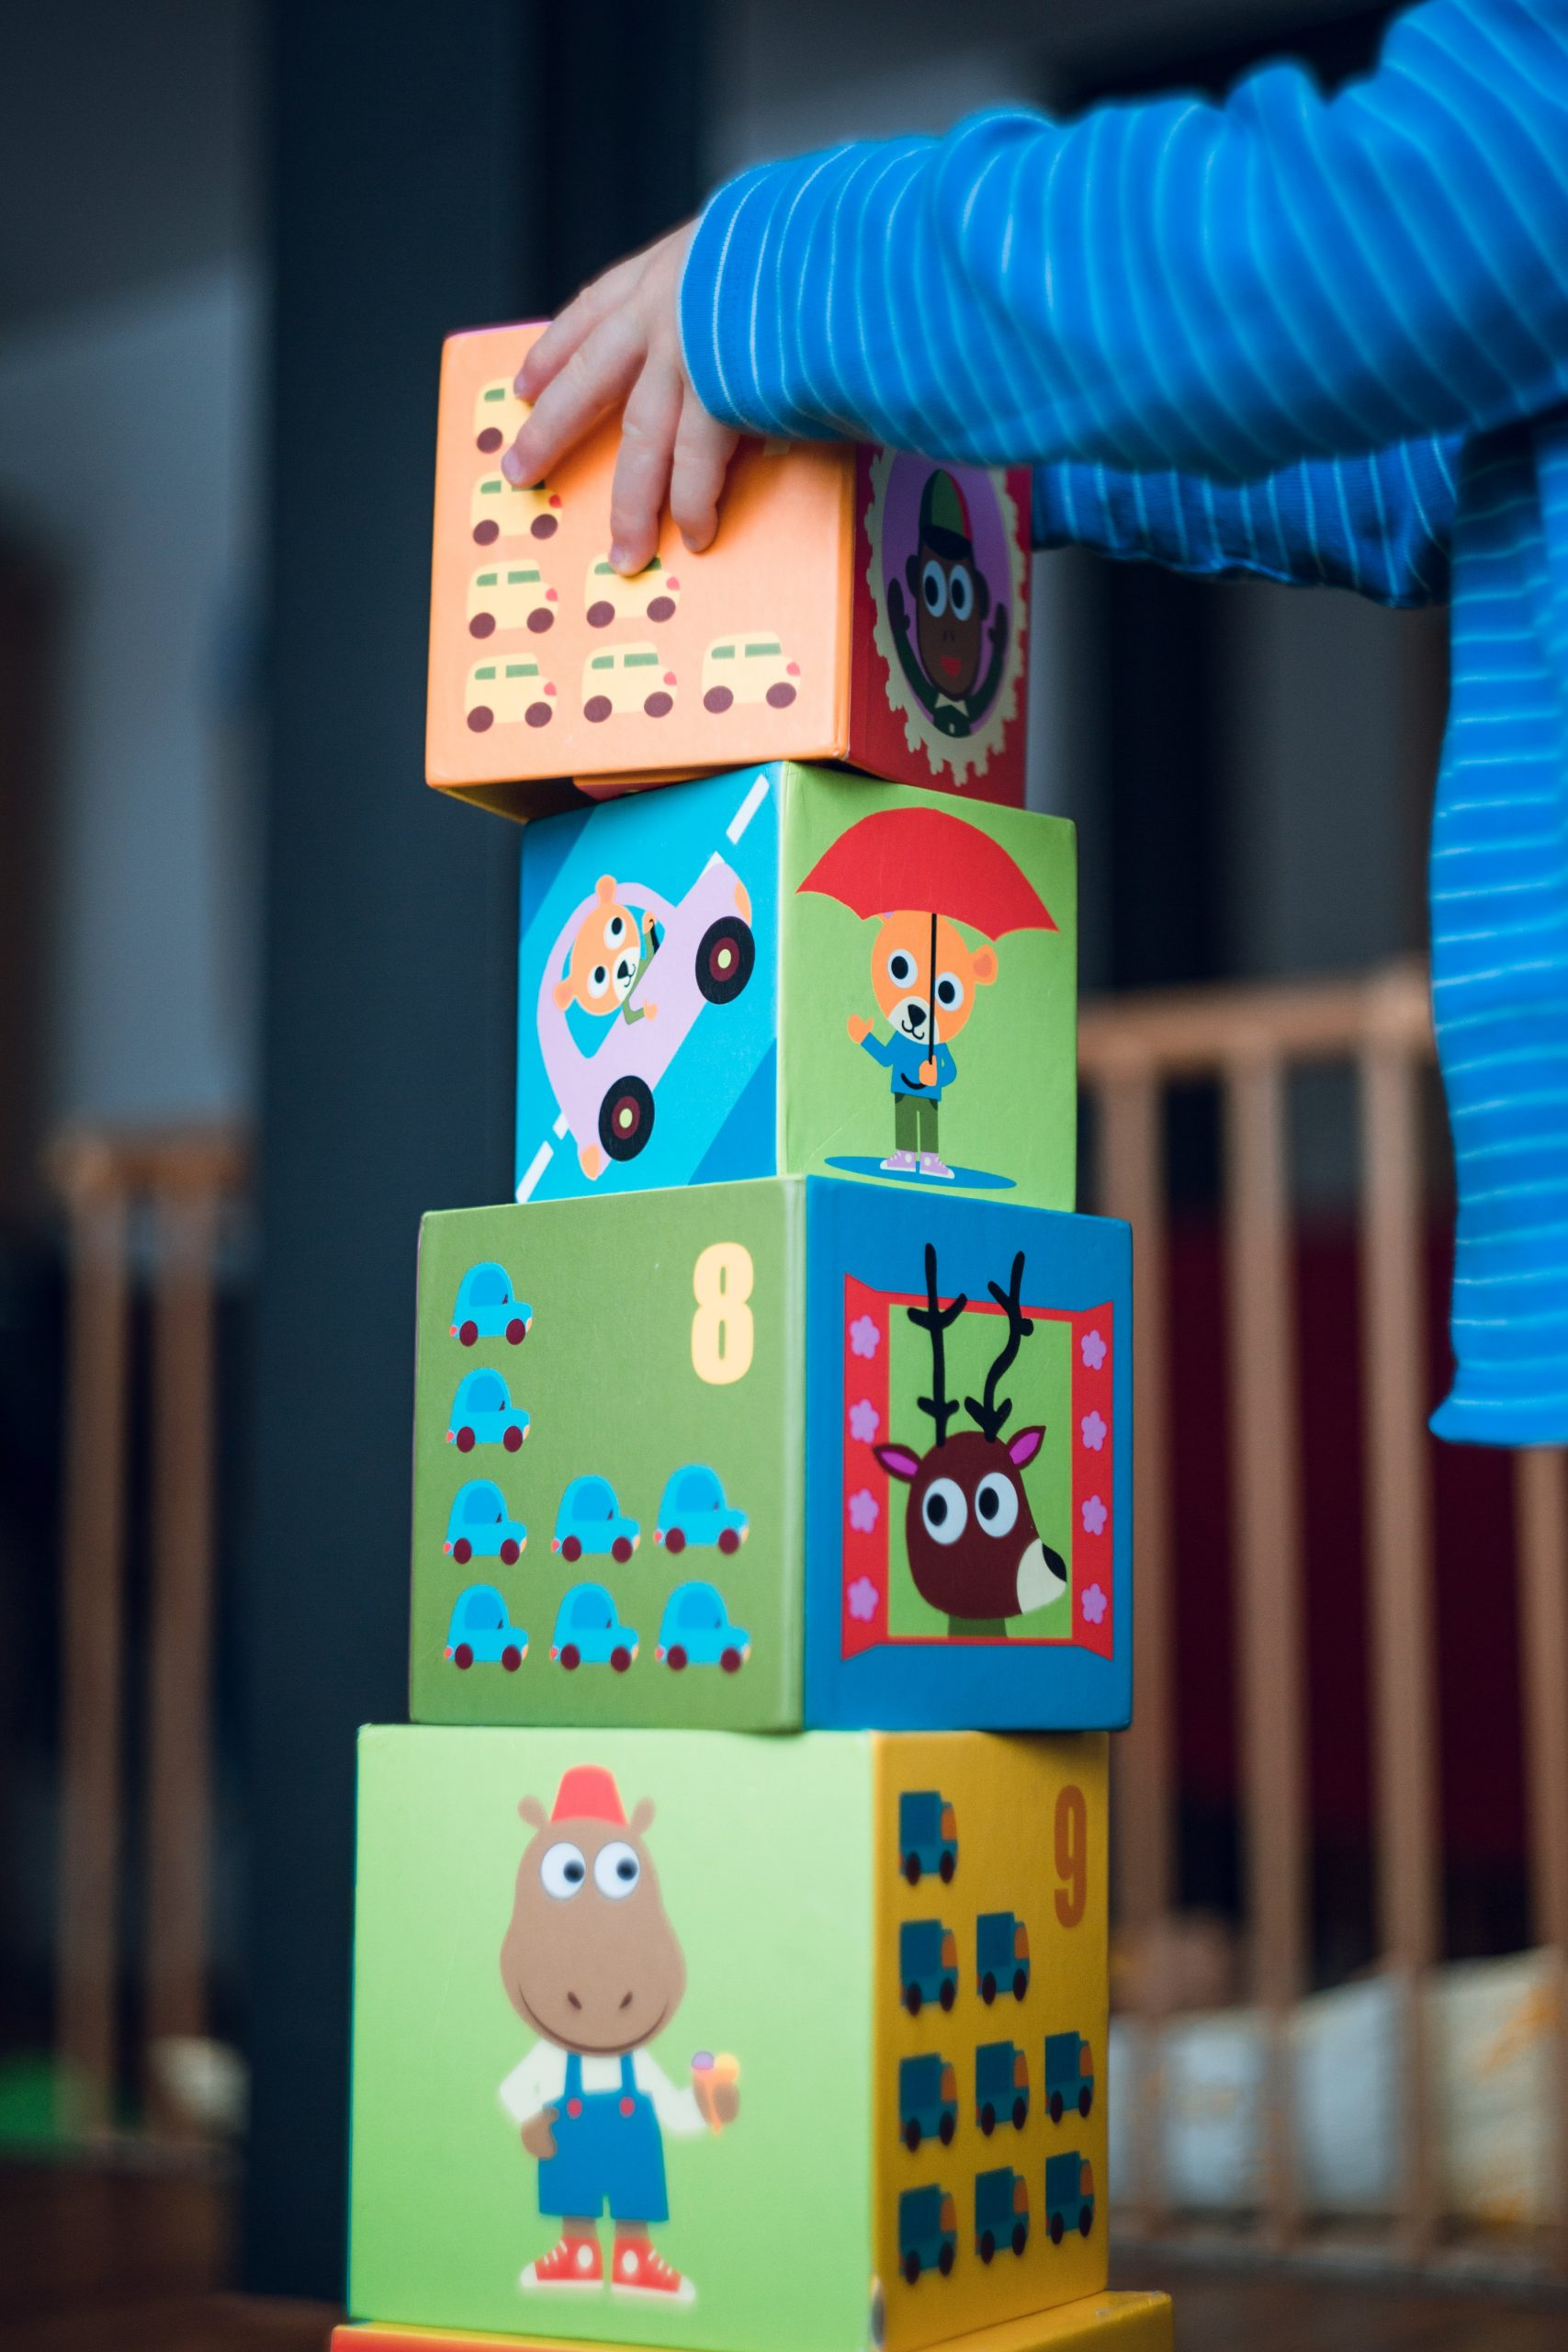 Steps to Take After a Daycare Injury